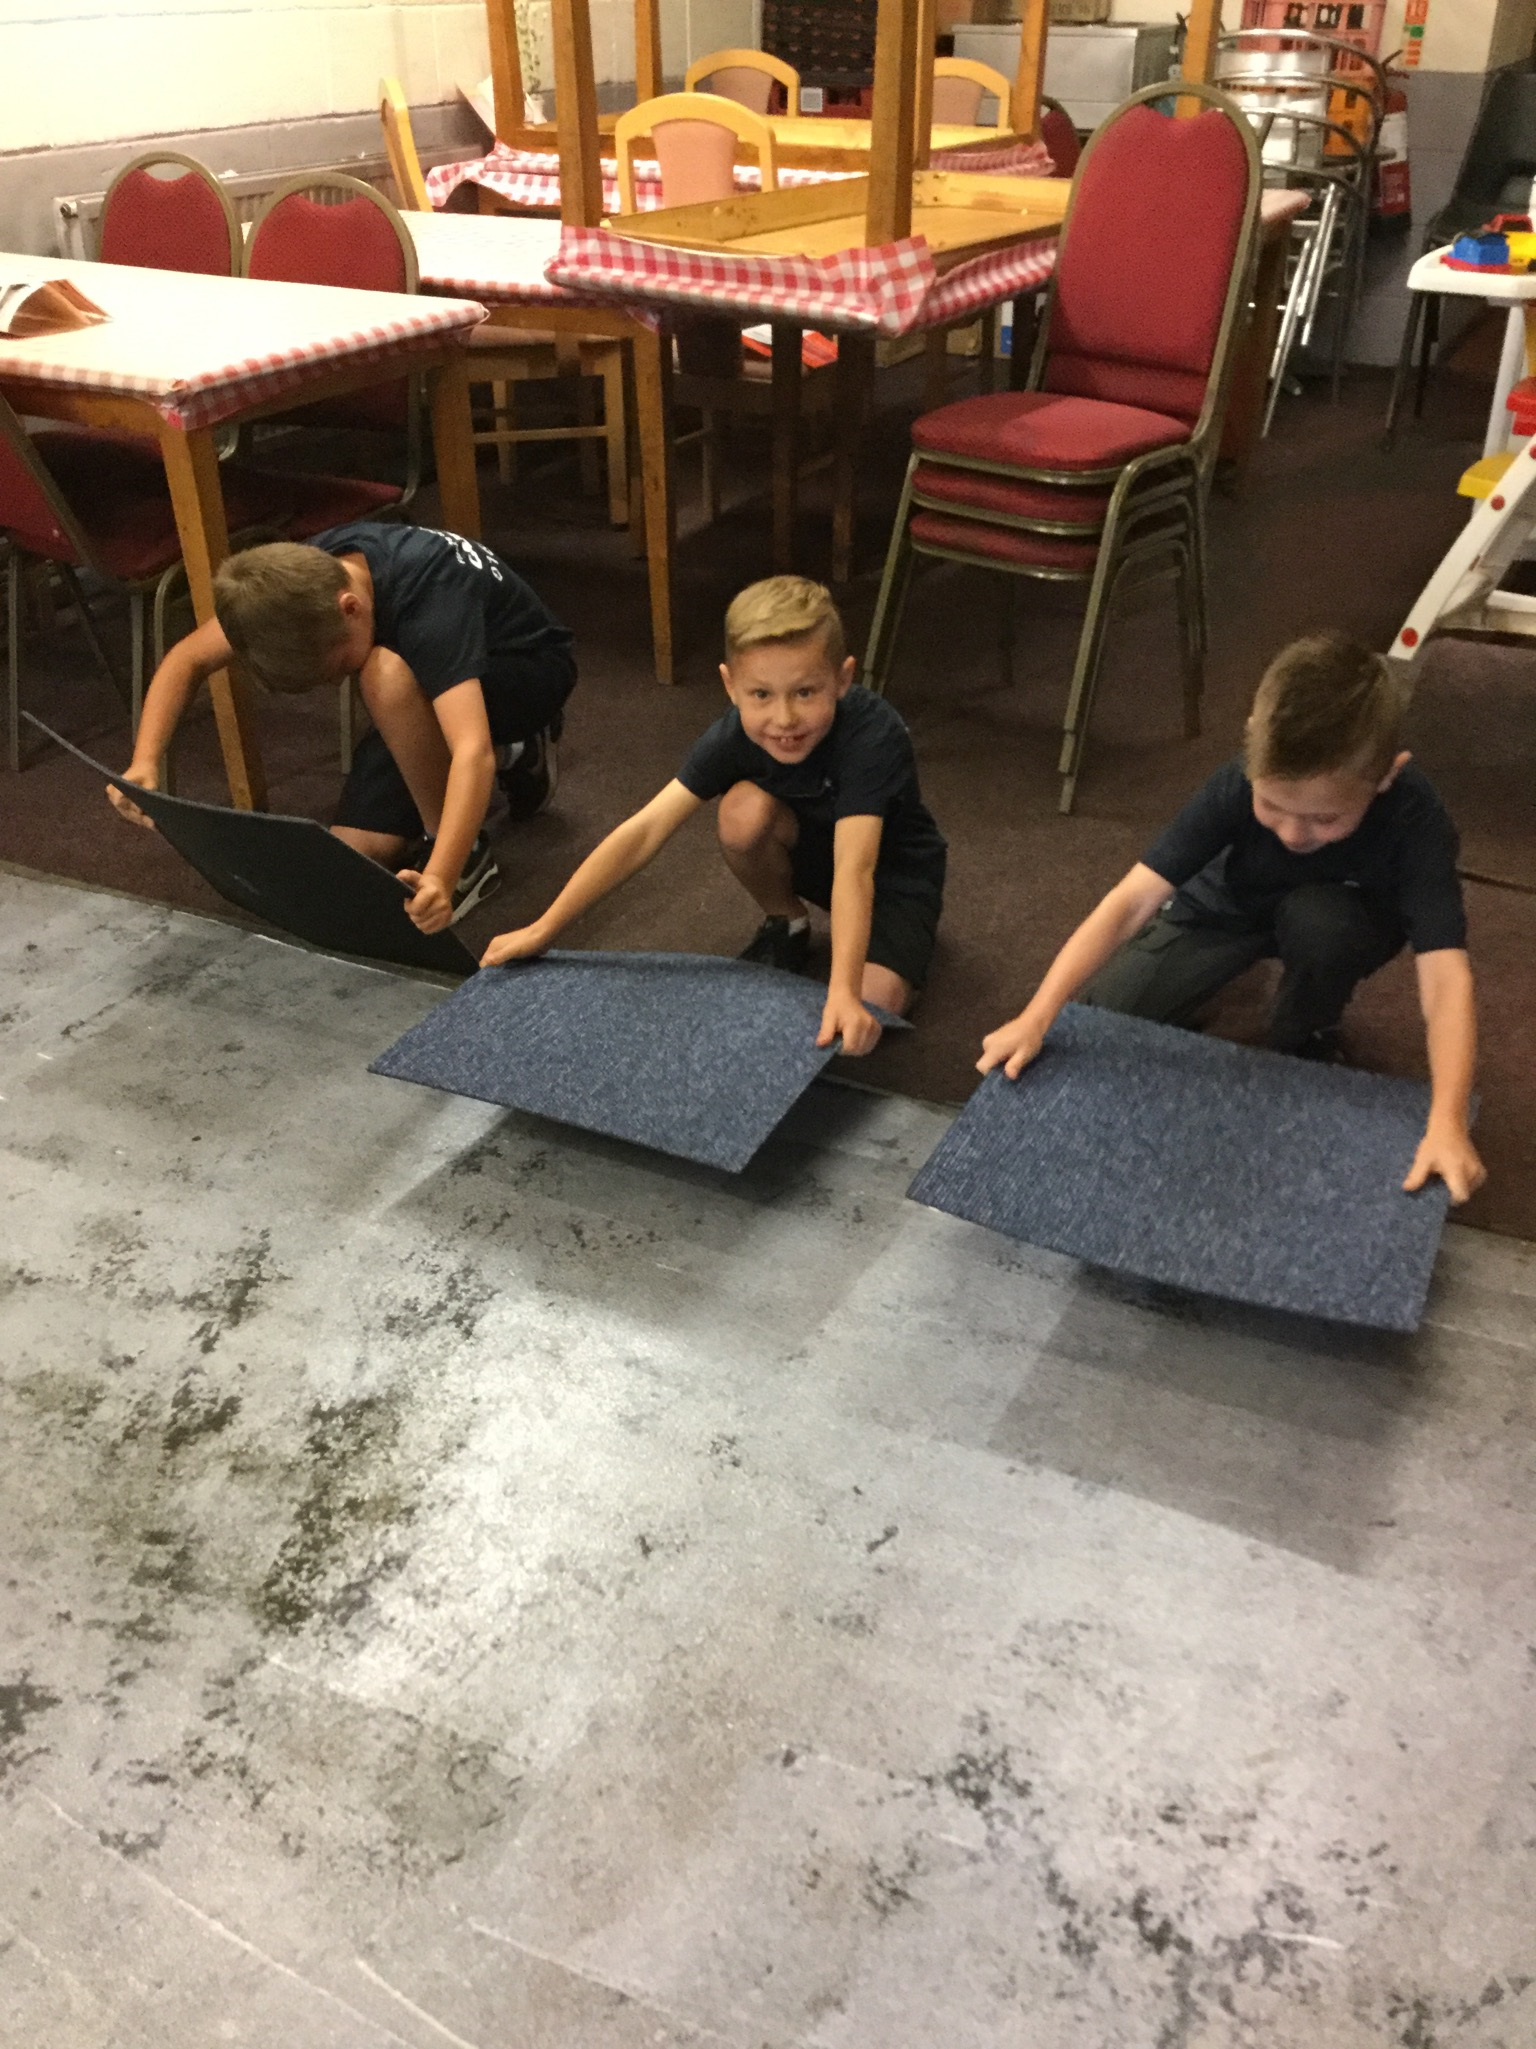 Carpet-Fit-Wales-Kids-Aberdare-South-Wales-Flooring-Carpets-LVT-Vinyl-Cleaning-Professional-Working